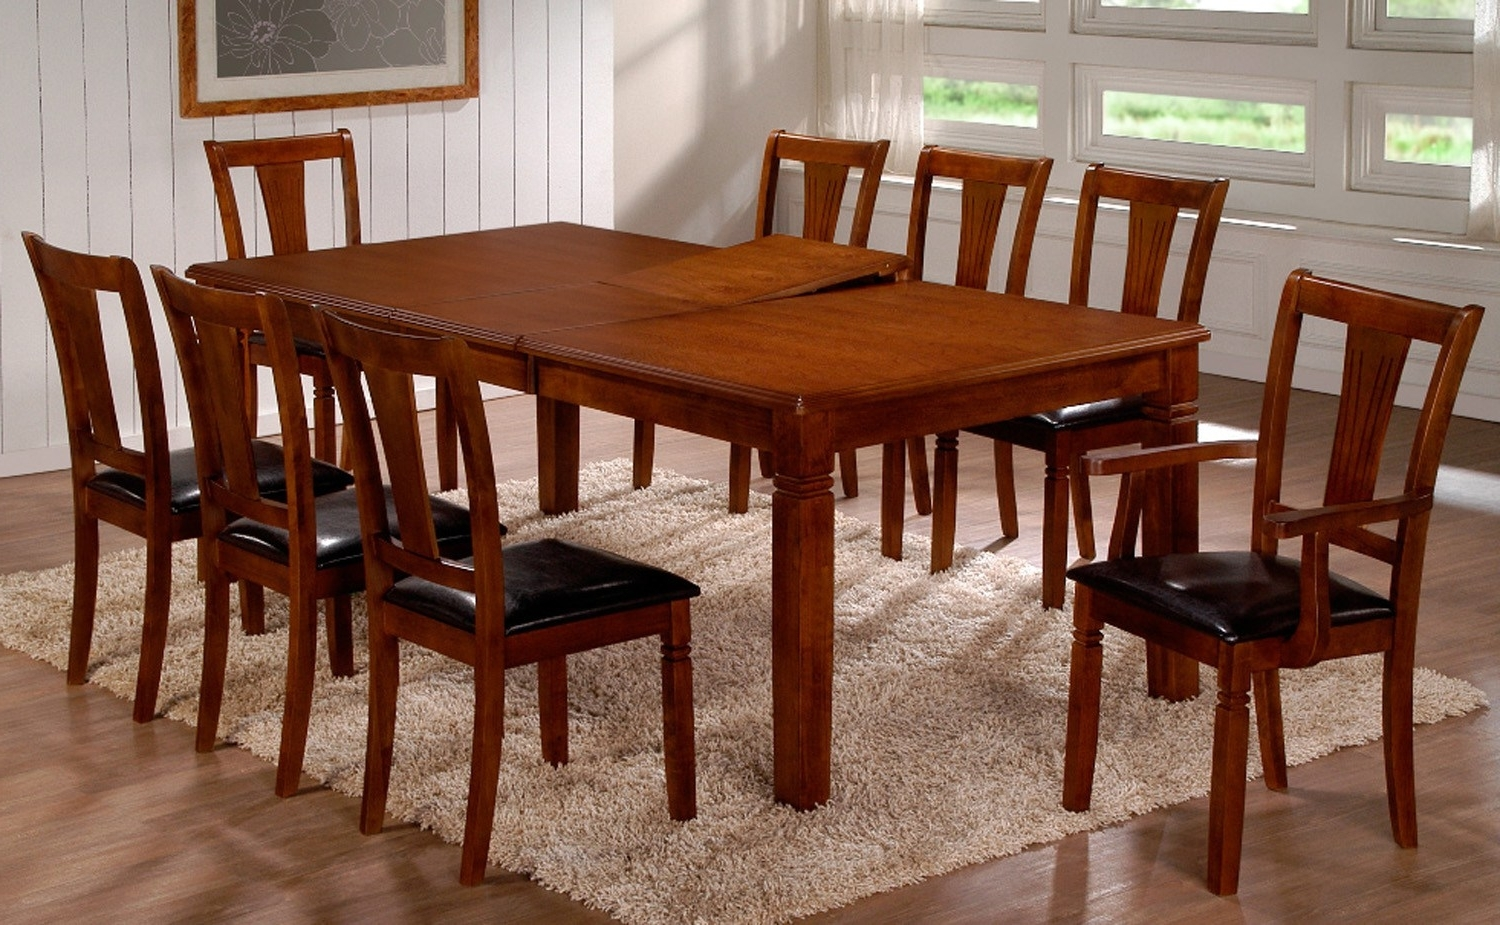 Most Popular Dining Table Set For 8 – Castrophotos Within Black 8 Seater Dining Tables (View 25 of 25)